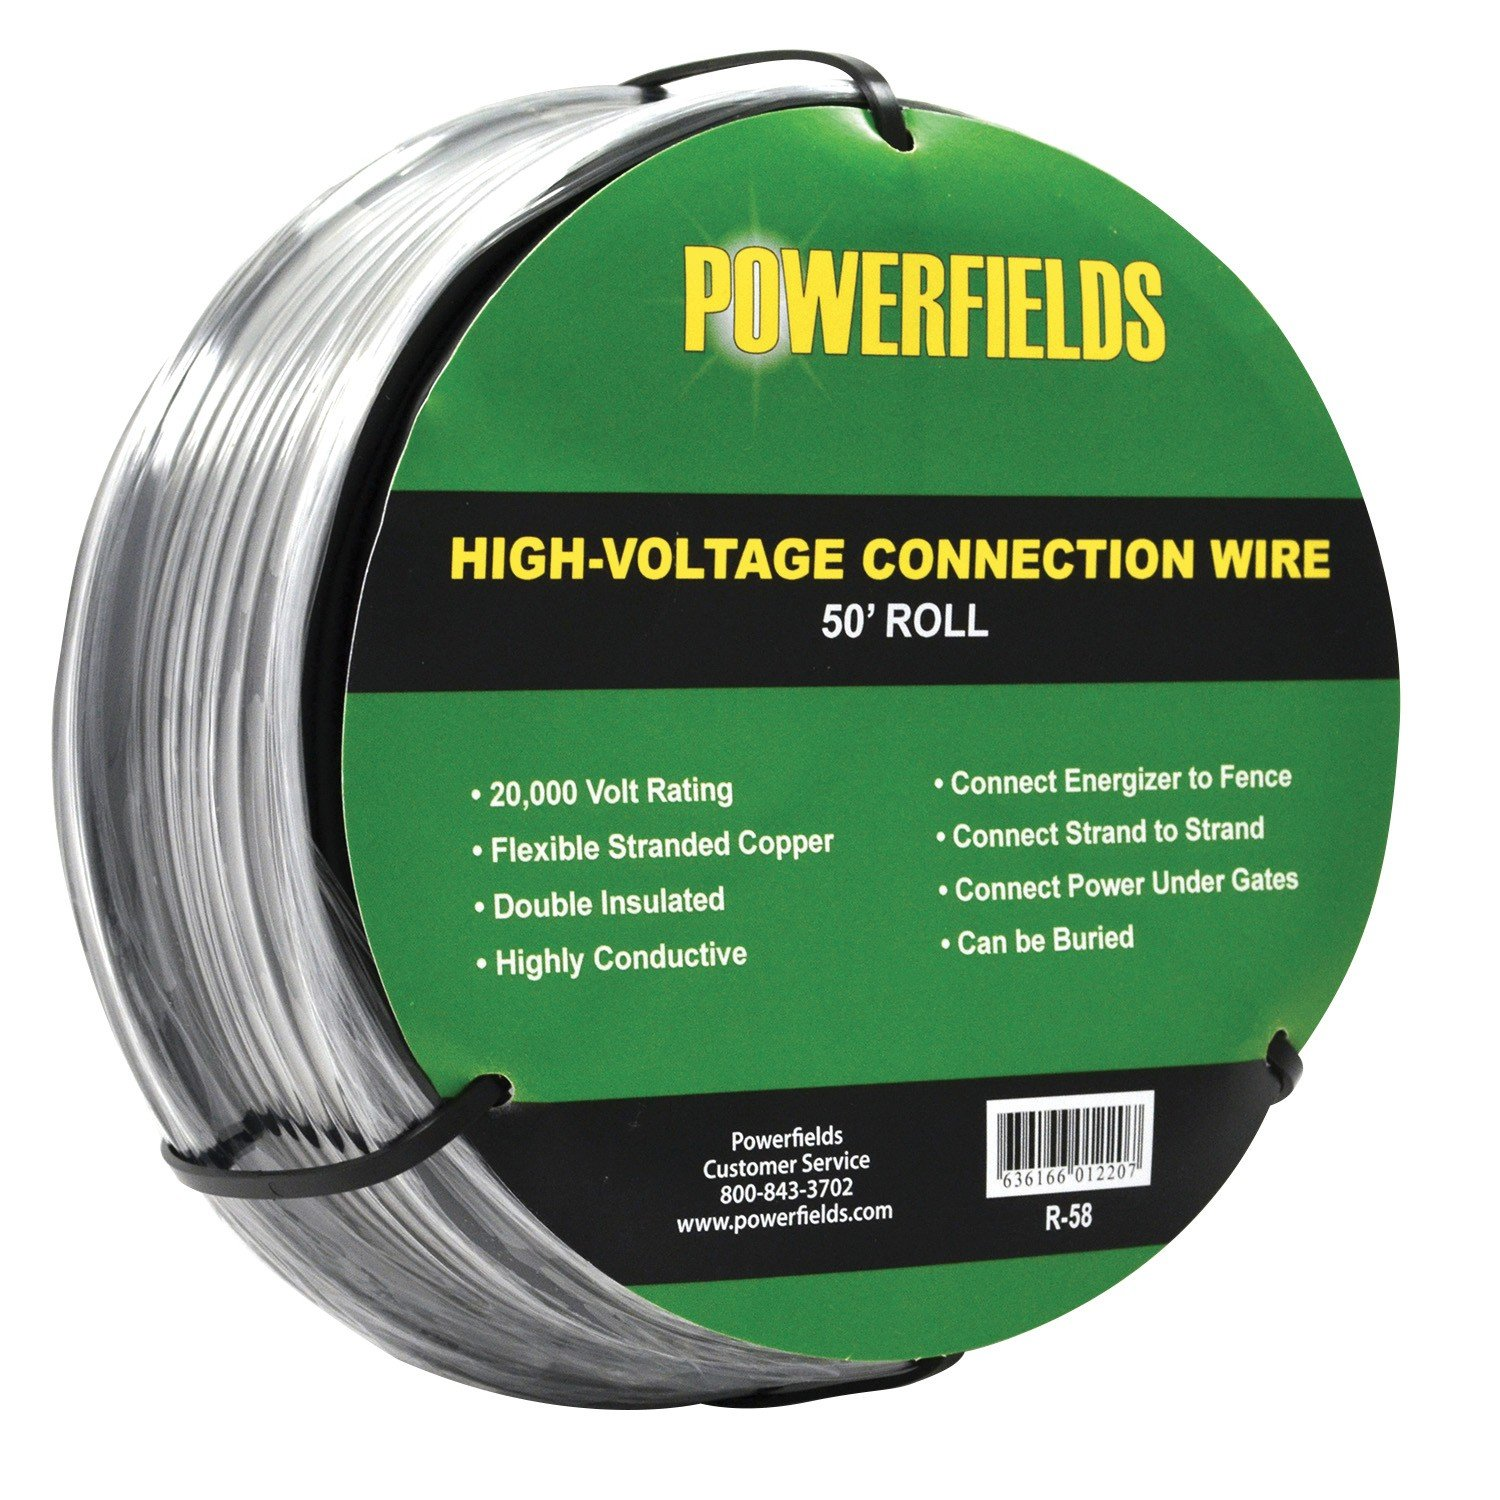 High Voltage Wire Powerfields Quality Electric Fence Wiring An